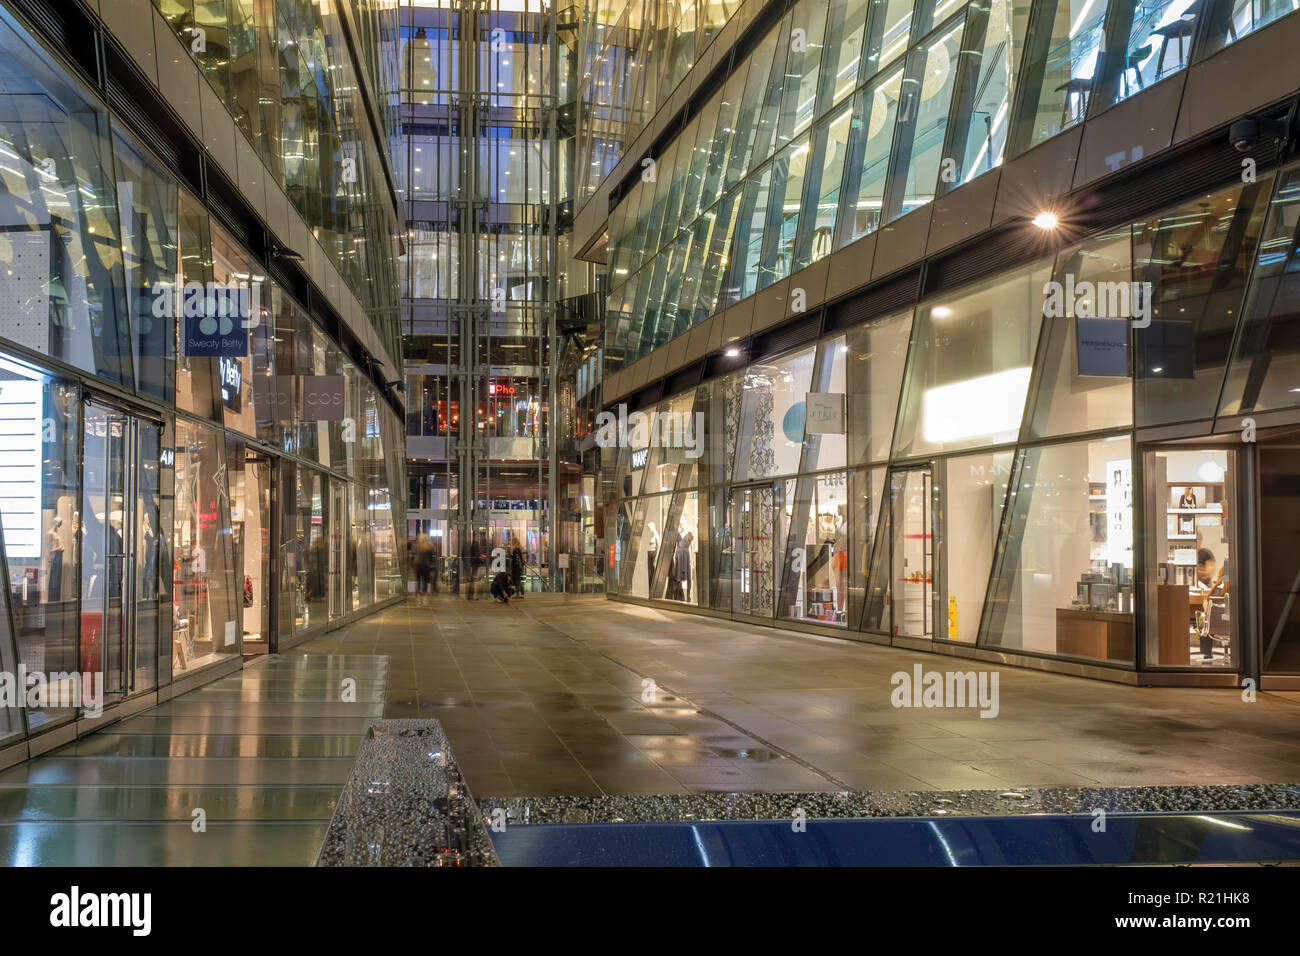 UK,London,EC4 M-high-end retail stores and restaurants at One New Change shopping Complex - Stock Image